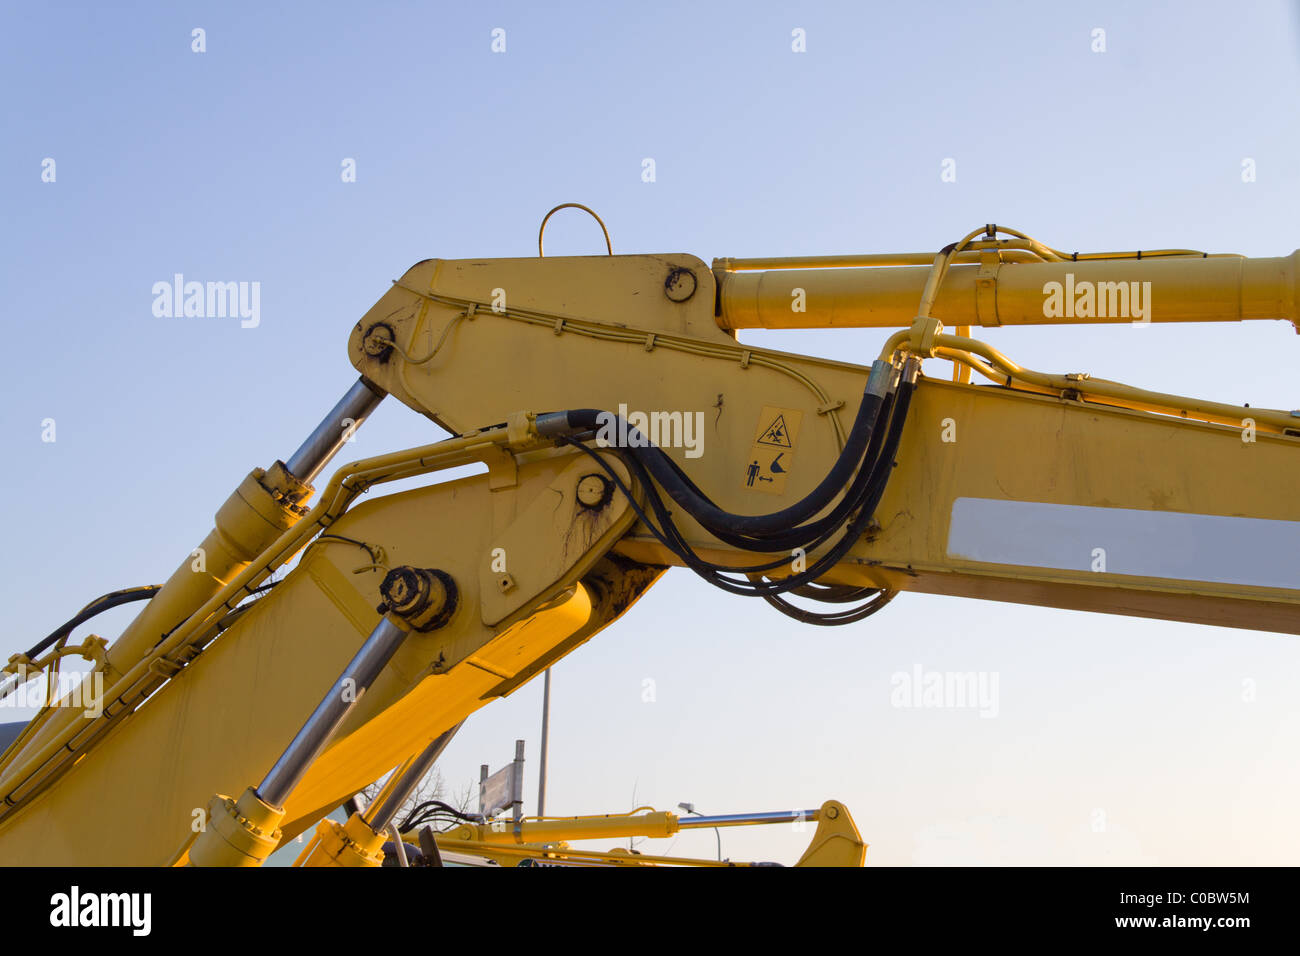 detail of yellow arm of the earthmover - Stock Image